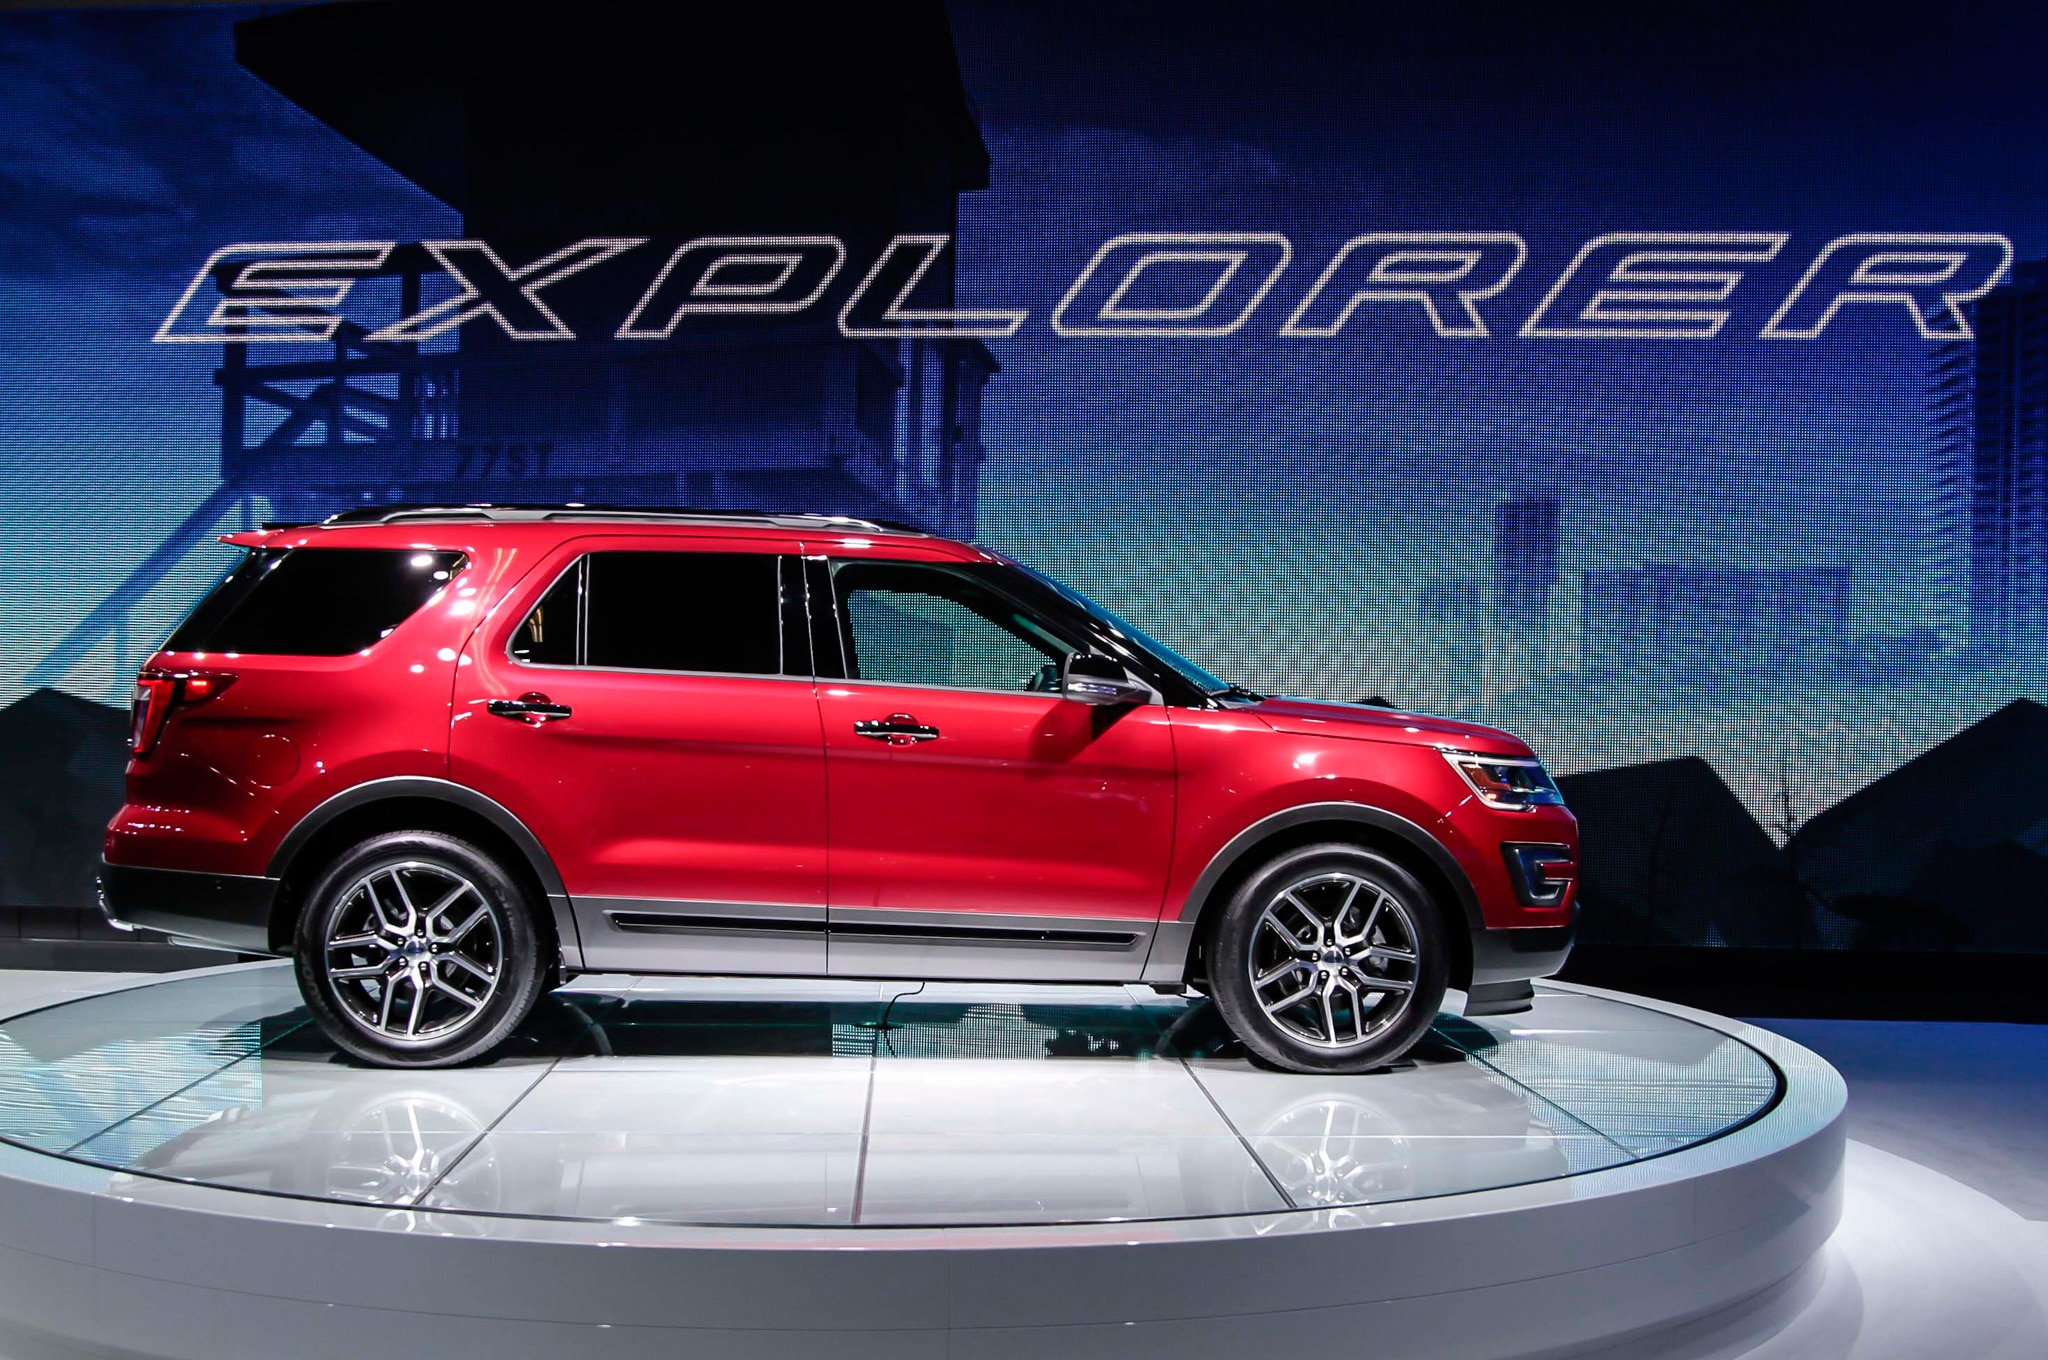 2016 Ford Explorer Sport Side View Photo Gallery 20 Photos